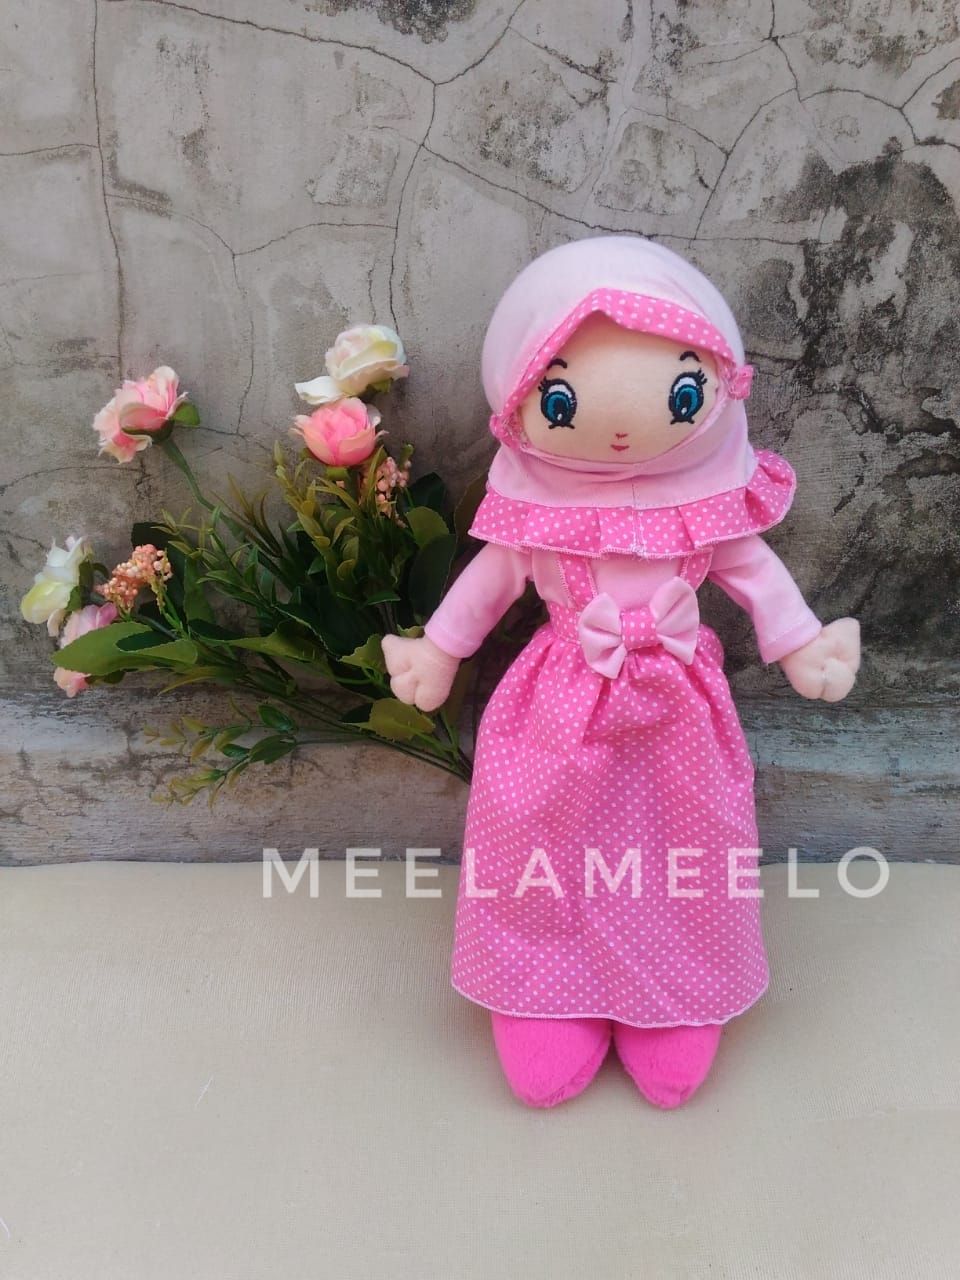 Promo Boneka Muslimah in All Pink Polka  60K ONLY